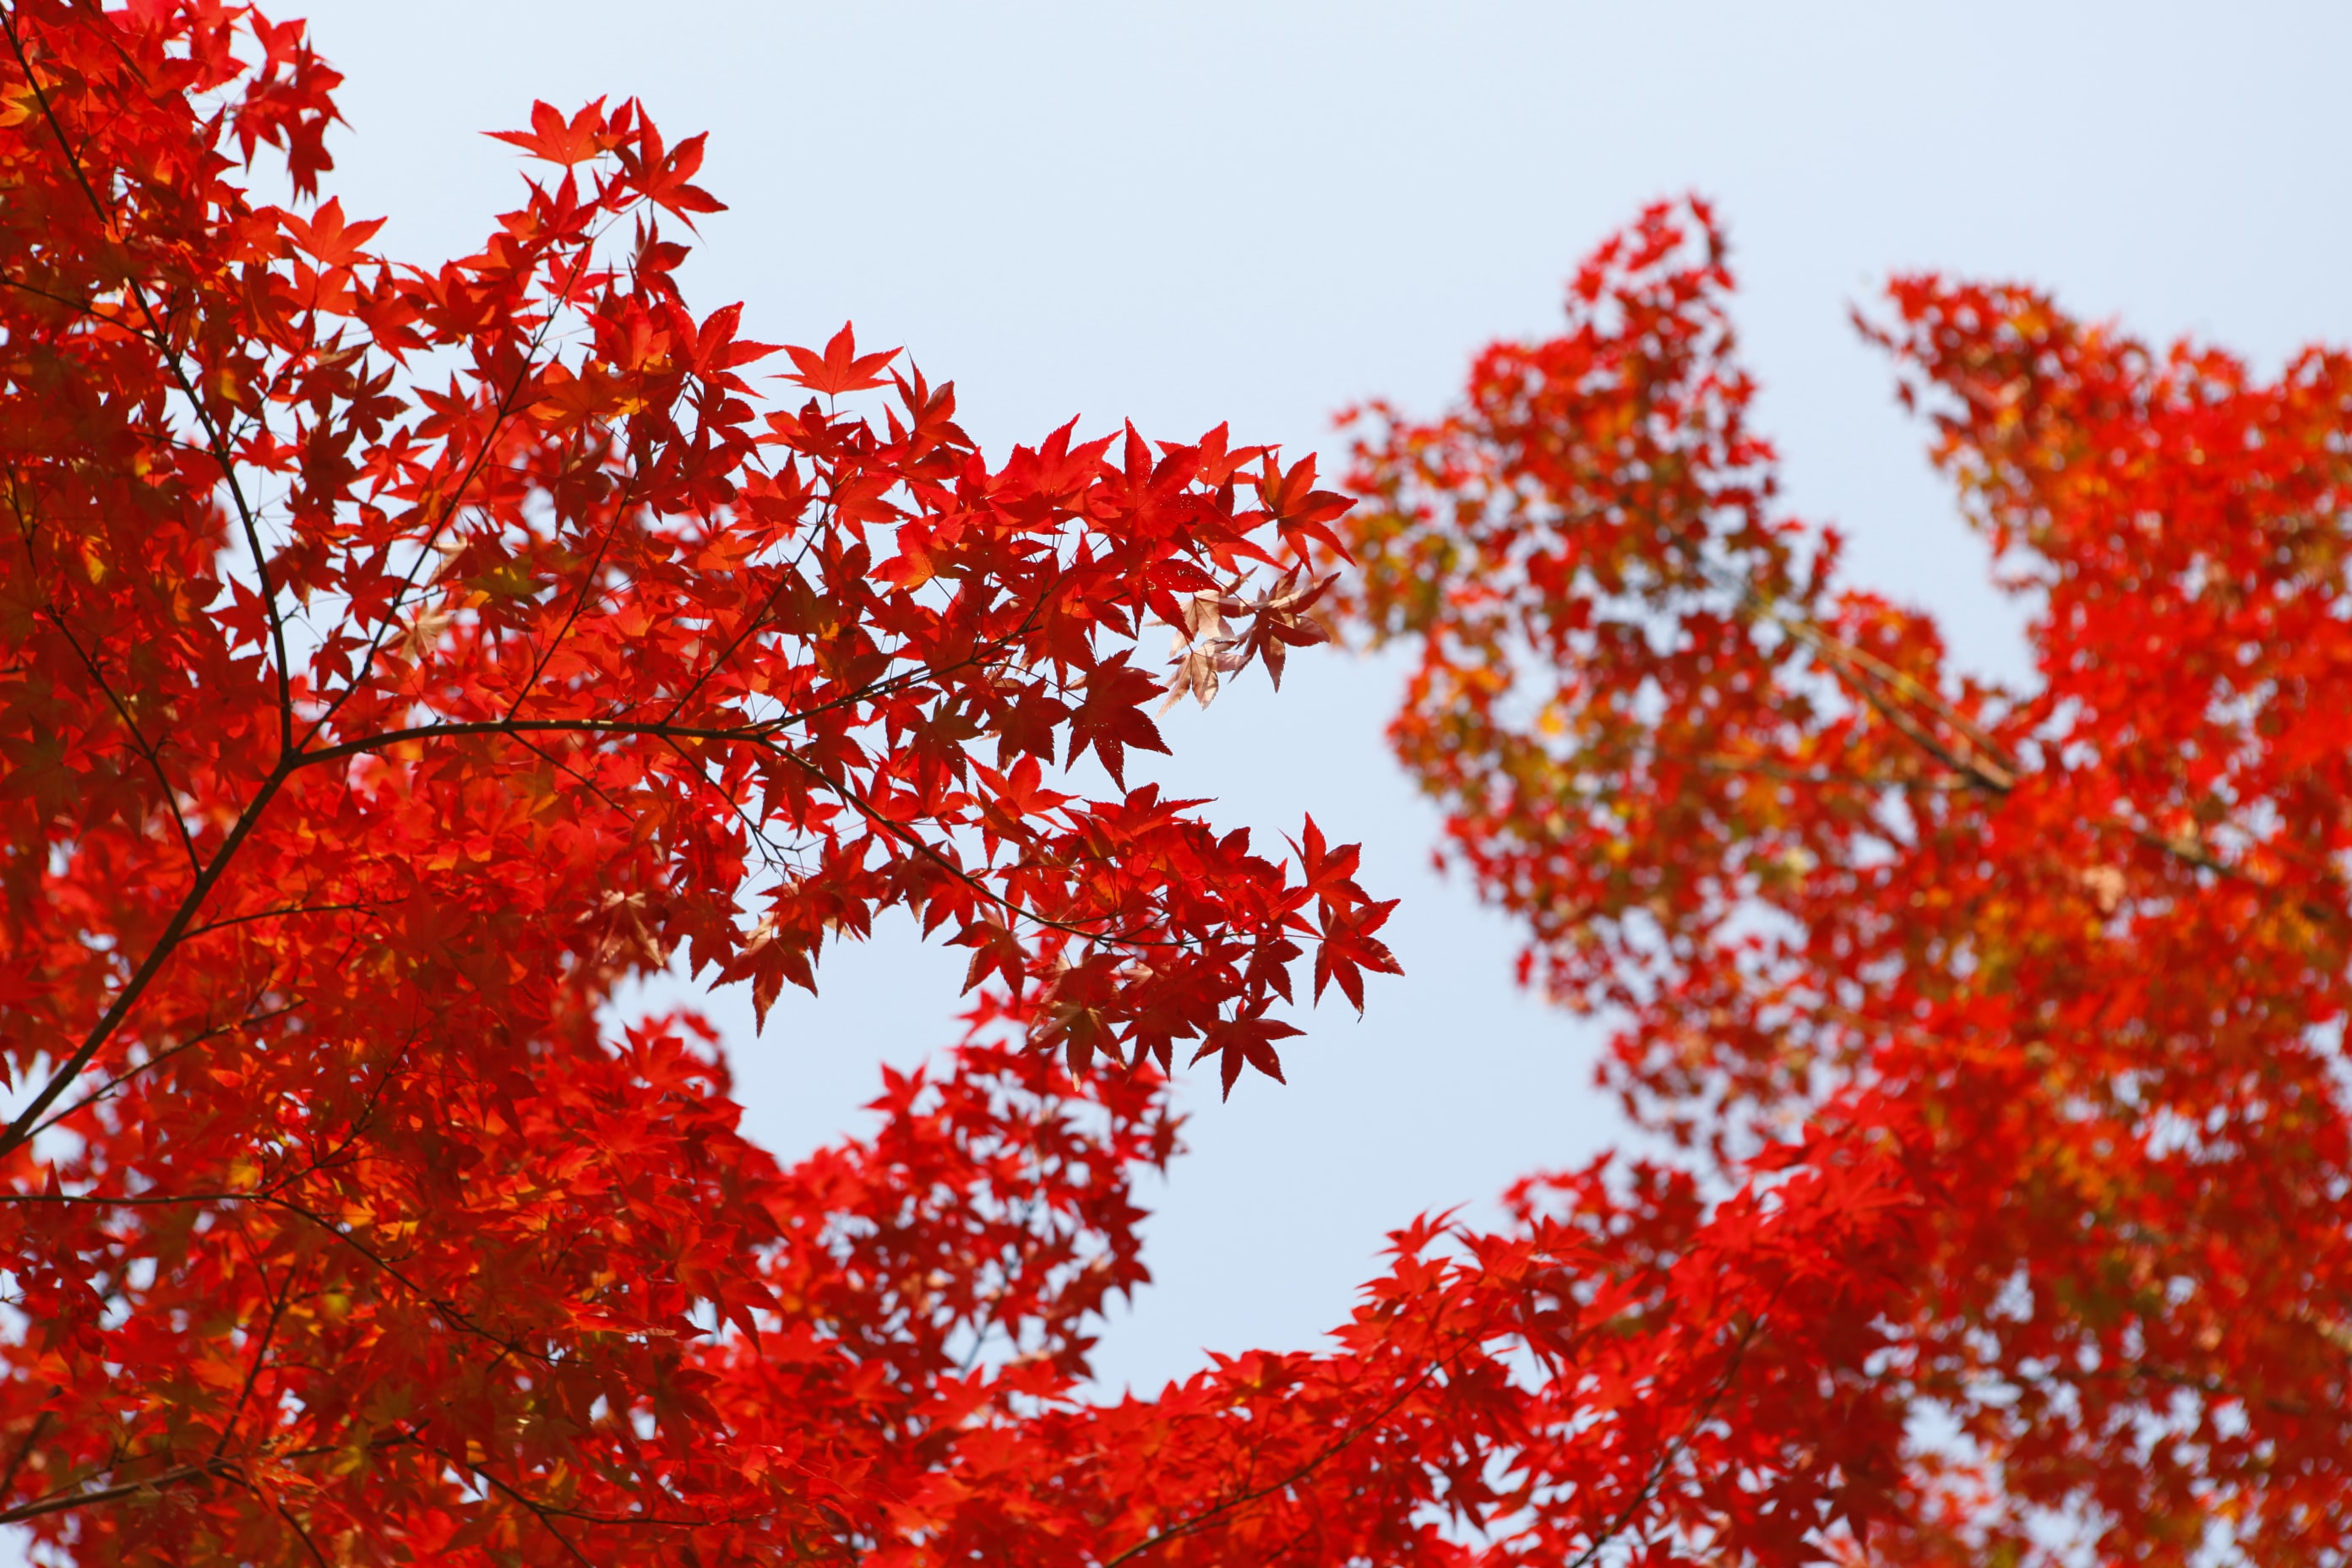 shallow focus photography of red leafed tree